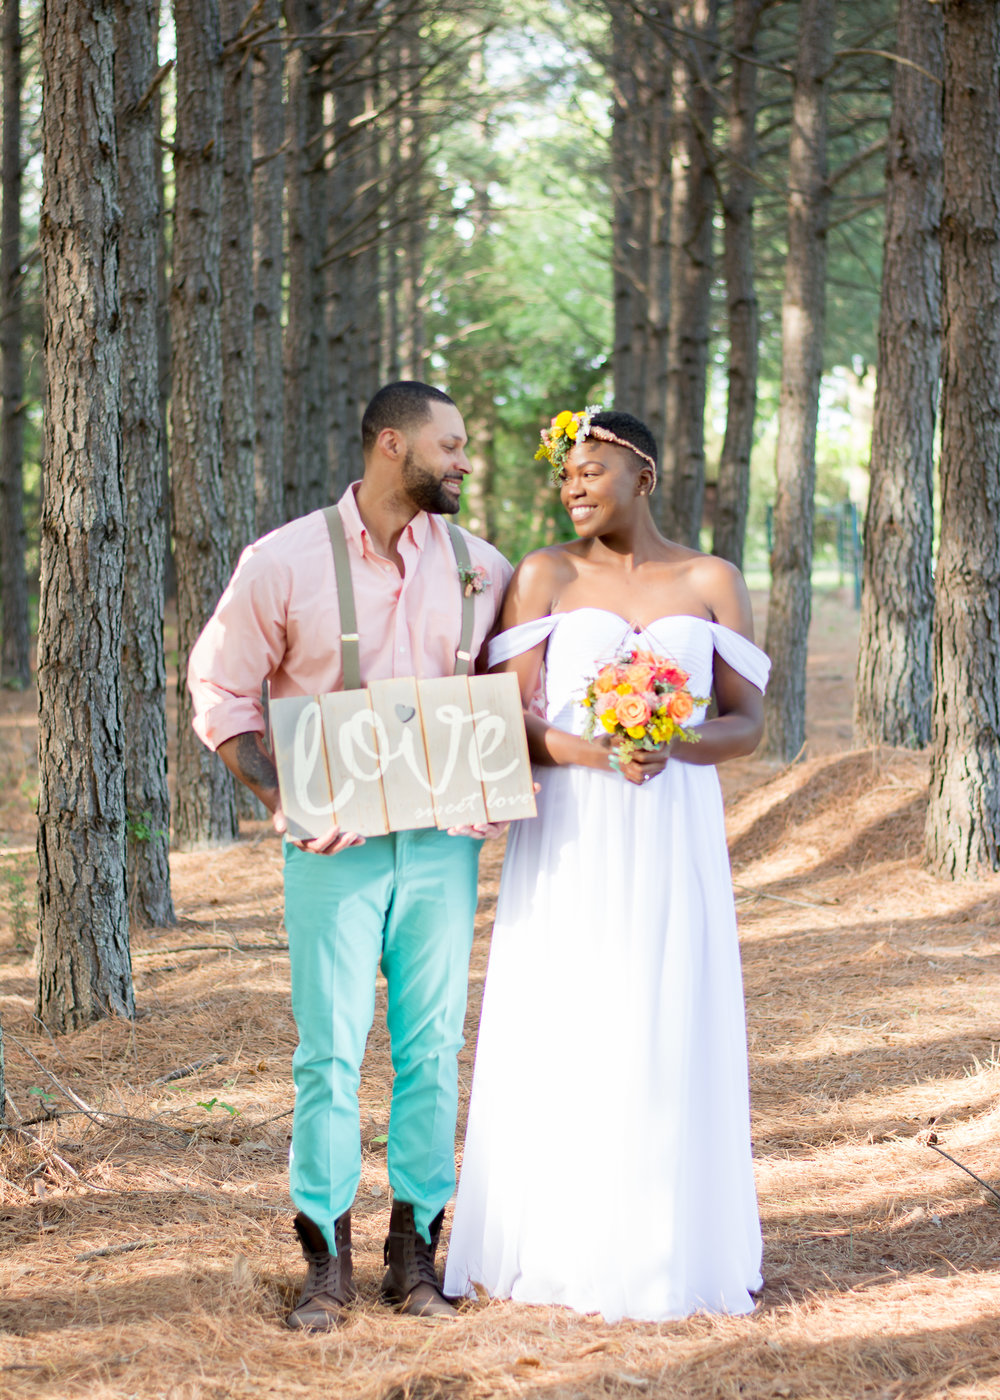 Denise Benson Photography and Vivid Detail Event Design Bohemian Woodland Wedding